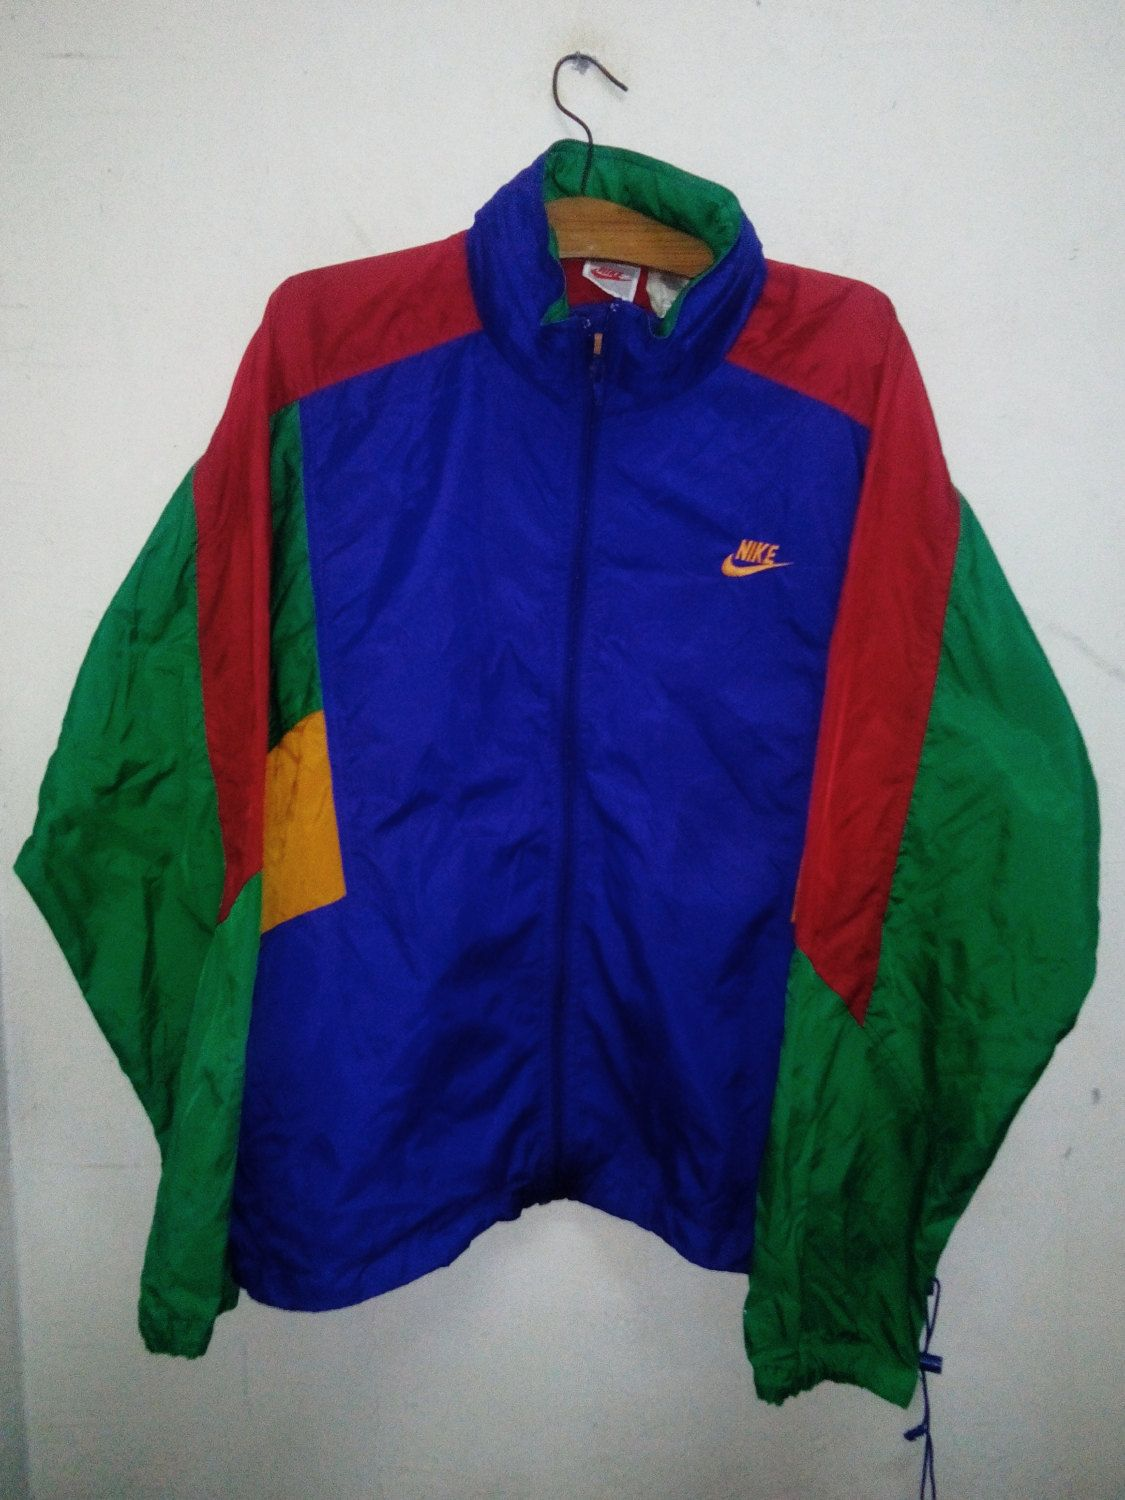 Sale Rare !! Vintage Multicolor 90 s O.G Nike Windbreaker Tuck Hoodie Jacket  Style with Fabolous Celebrity Fashion Swag Sz L by Psychovault on Etsy 0583f3b7c